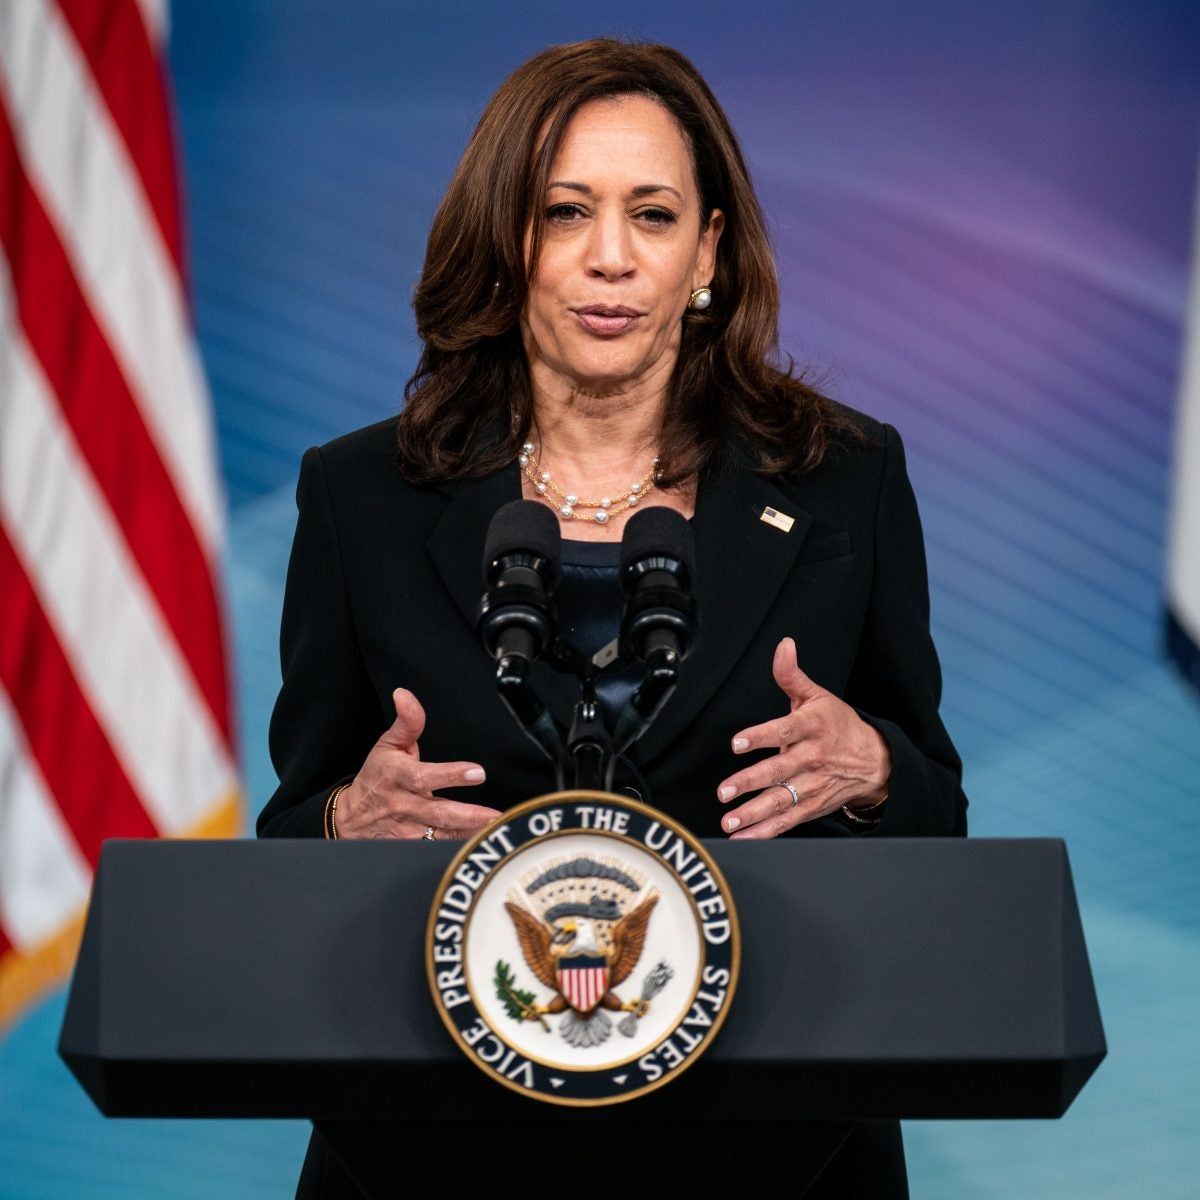 Vice President Kamala Harris to Lead White House Efforts to Protect Voting Rights